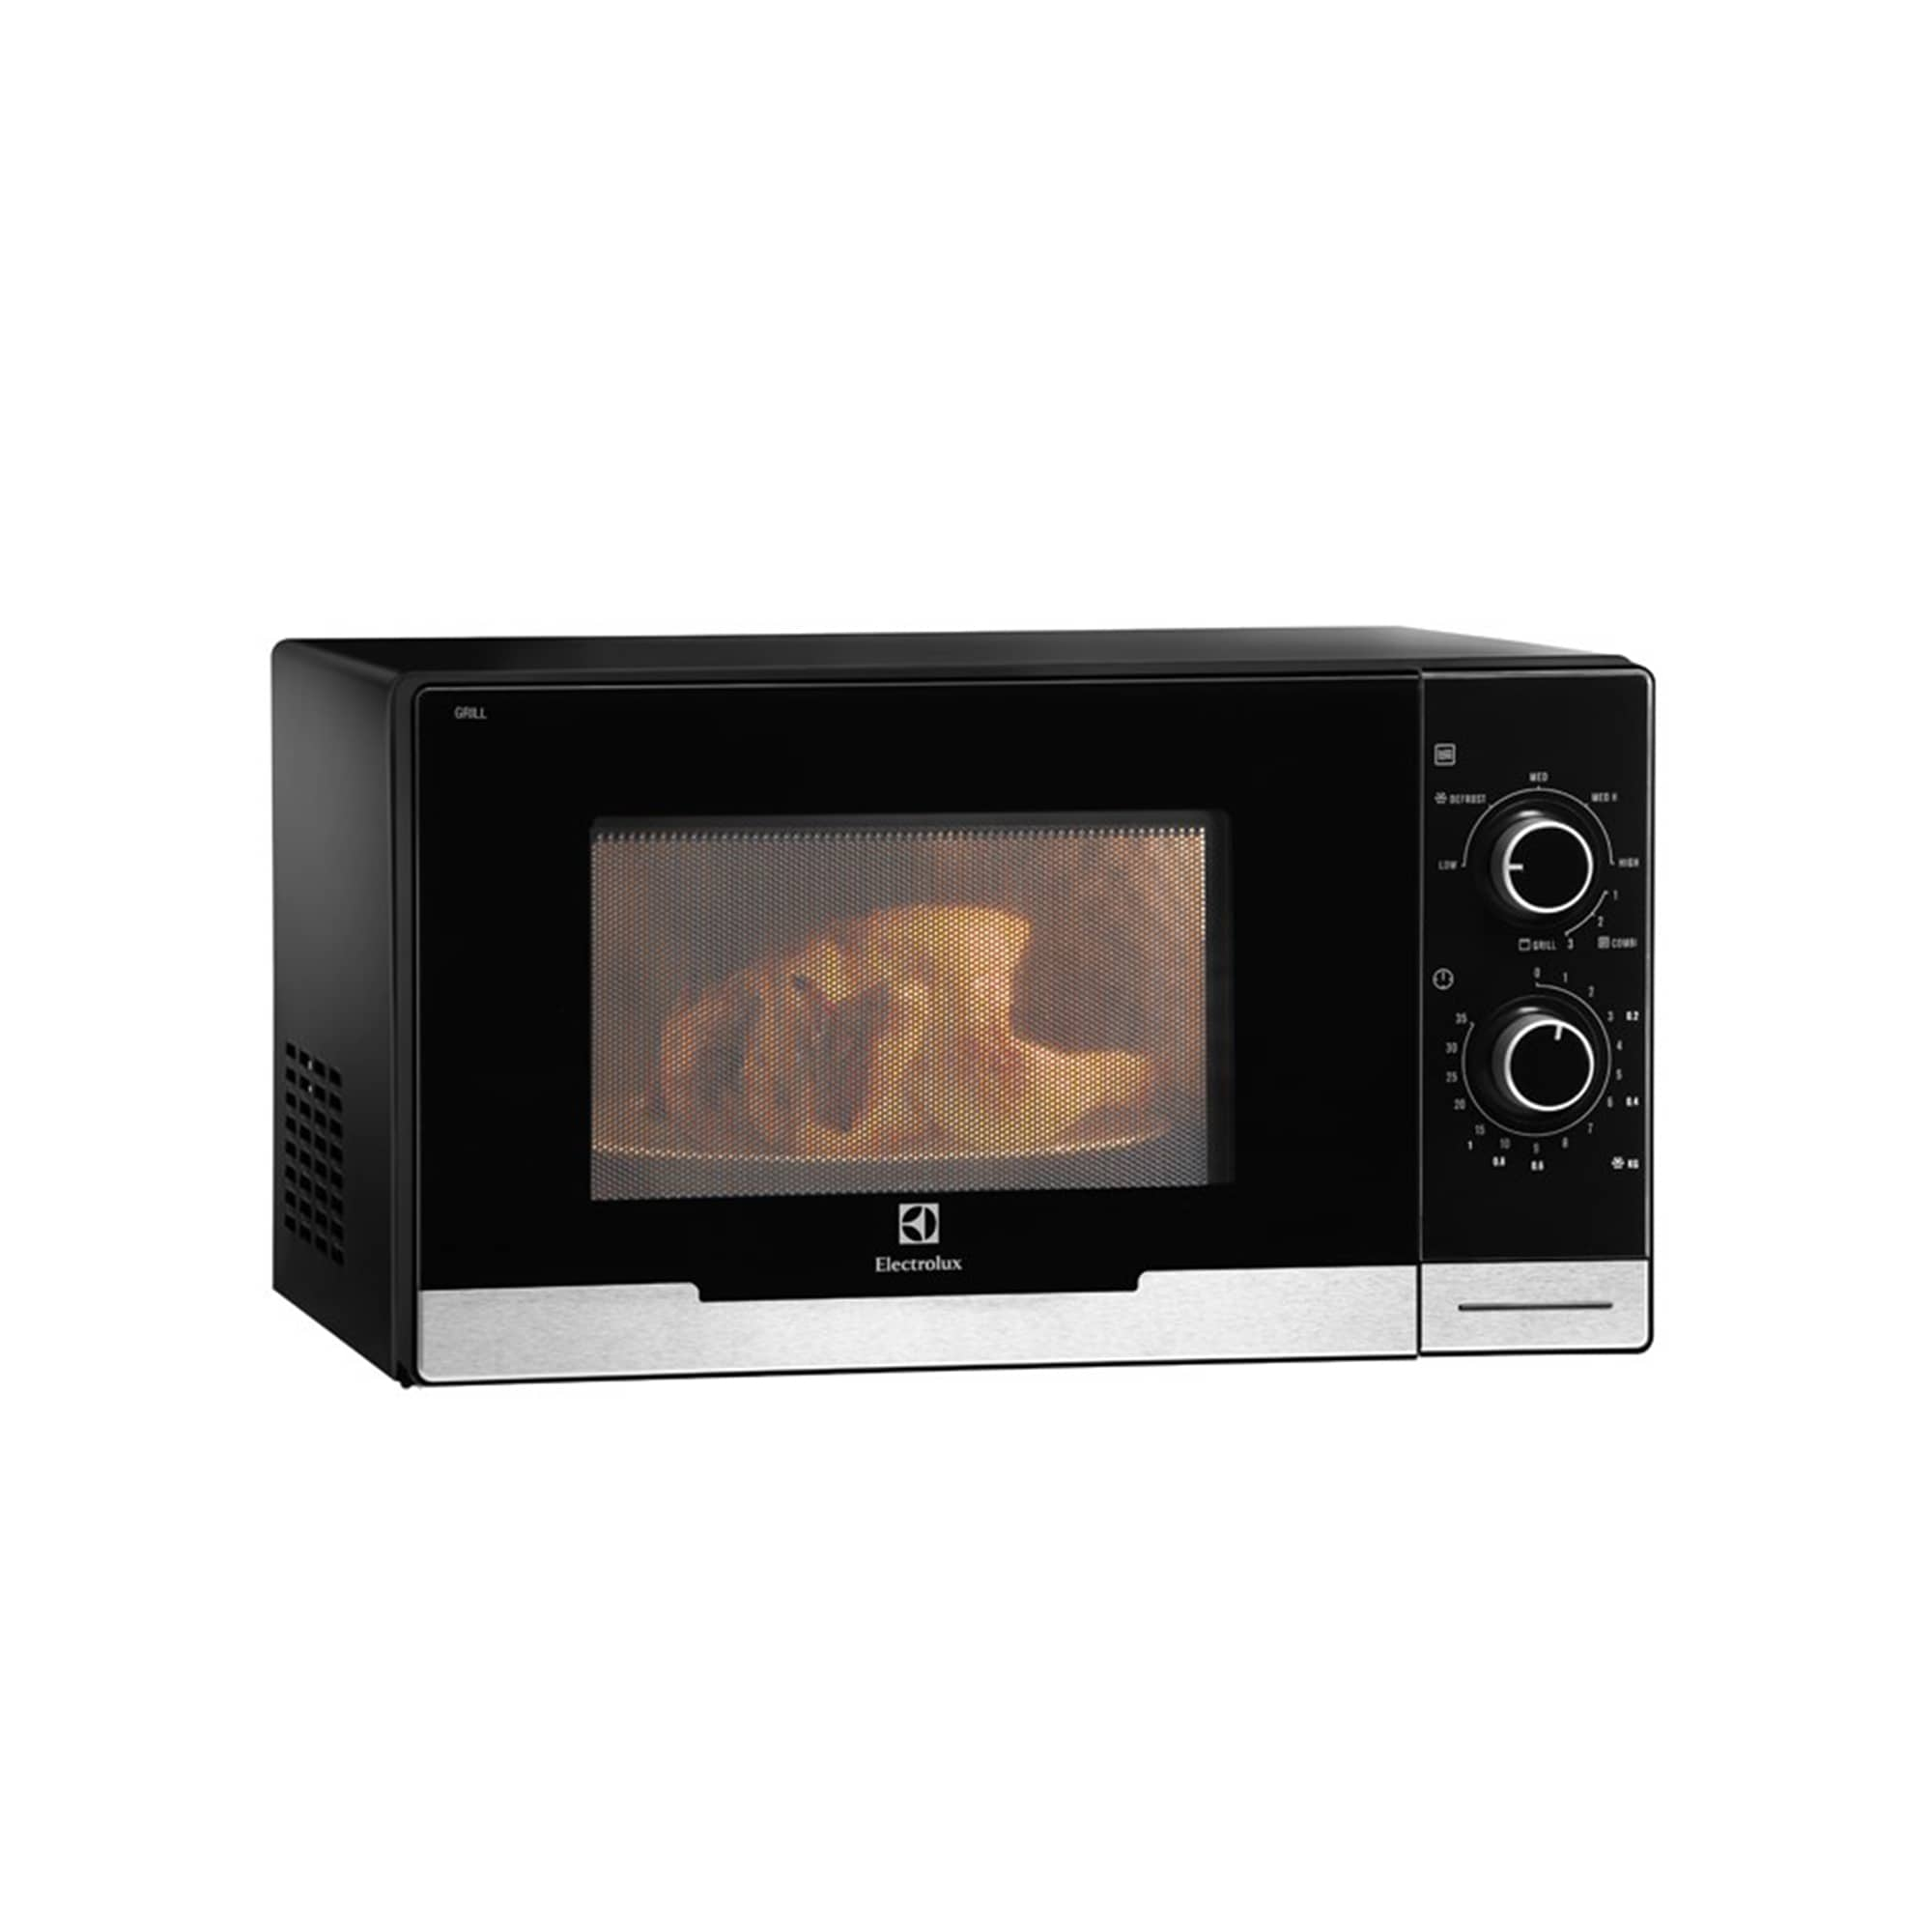 Electrolux Microwave Ovens Bestmicrowave